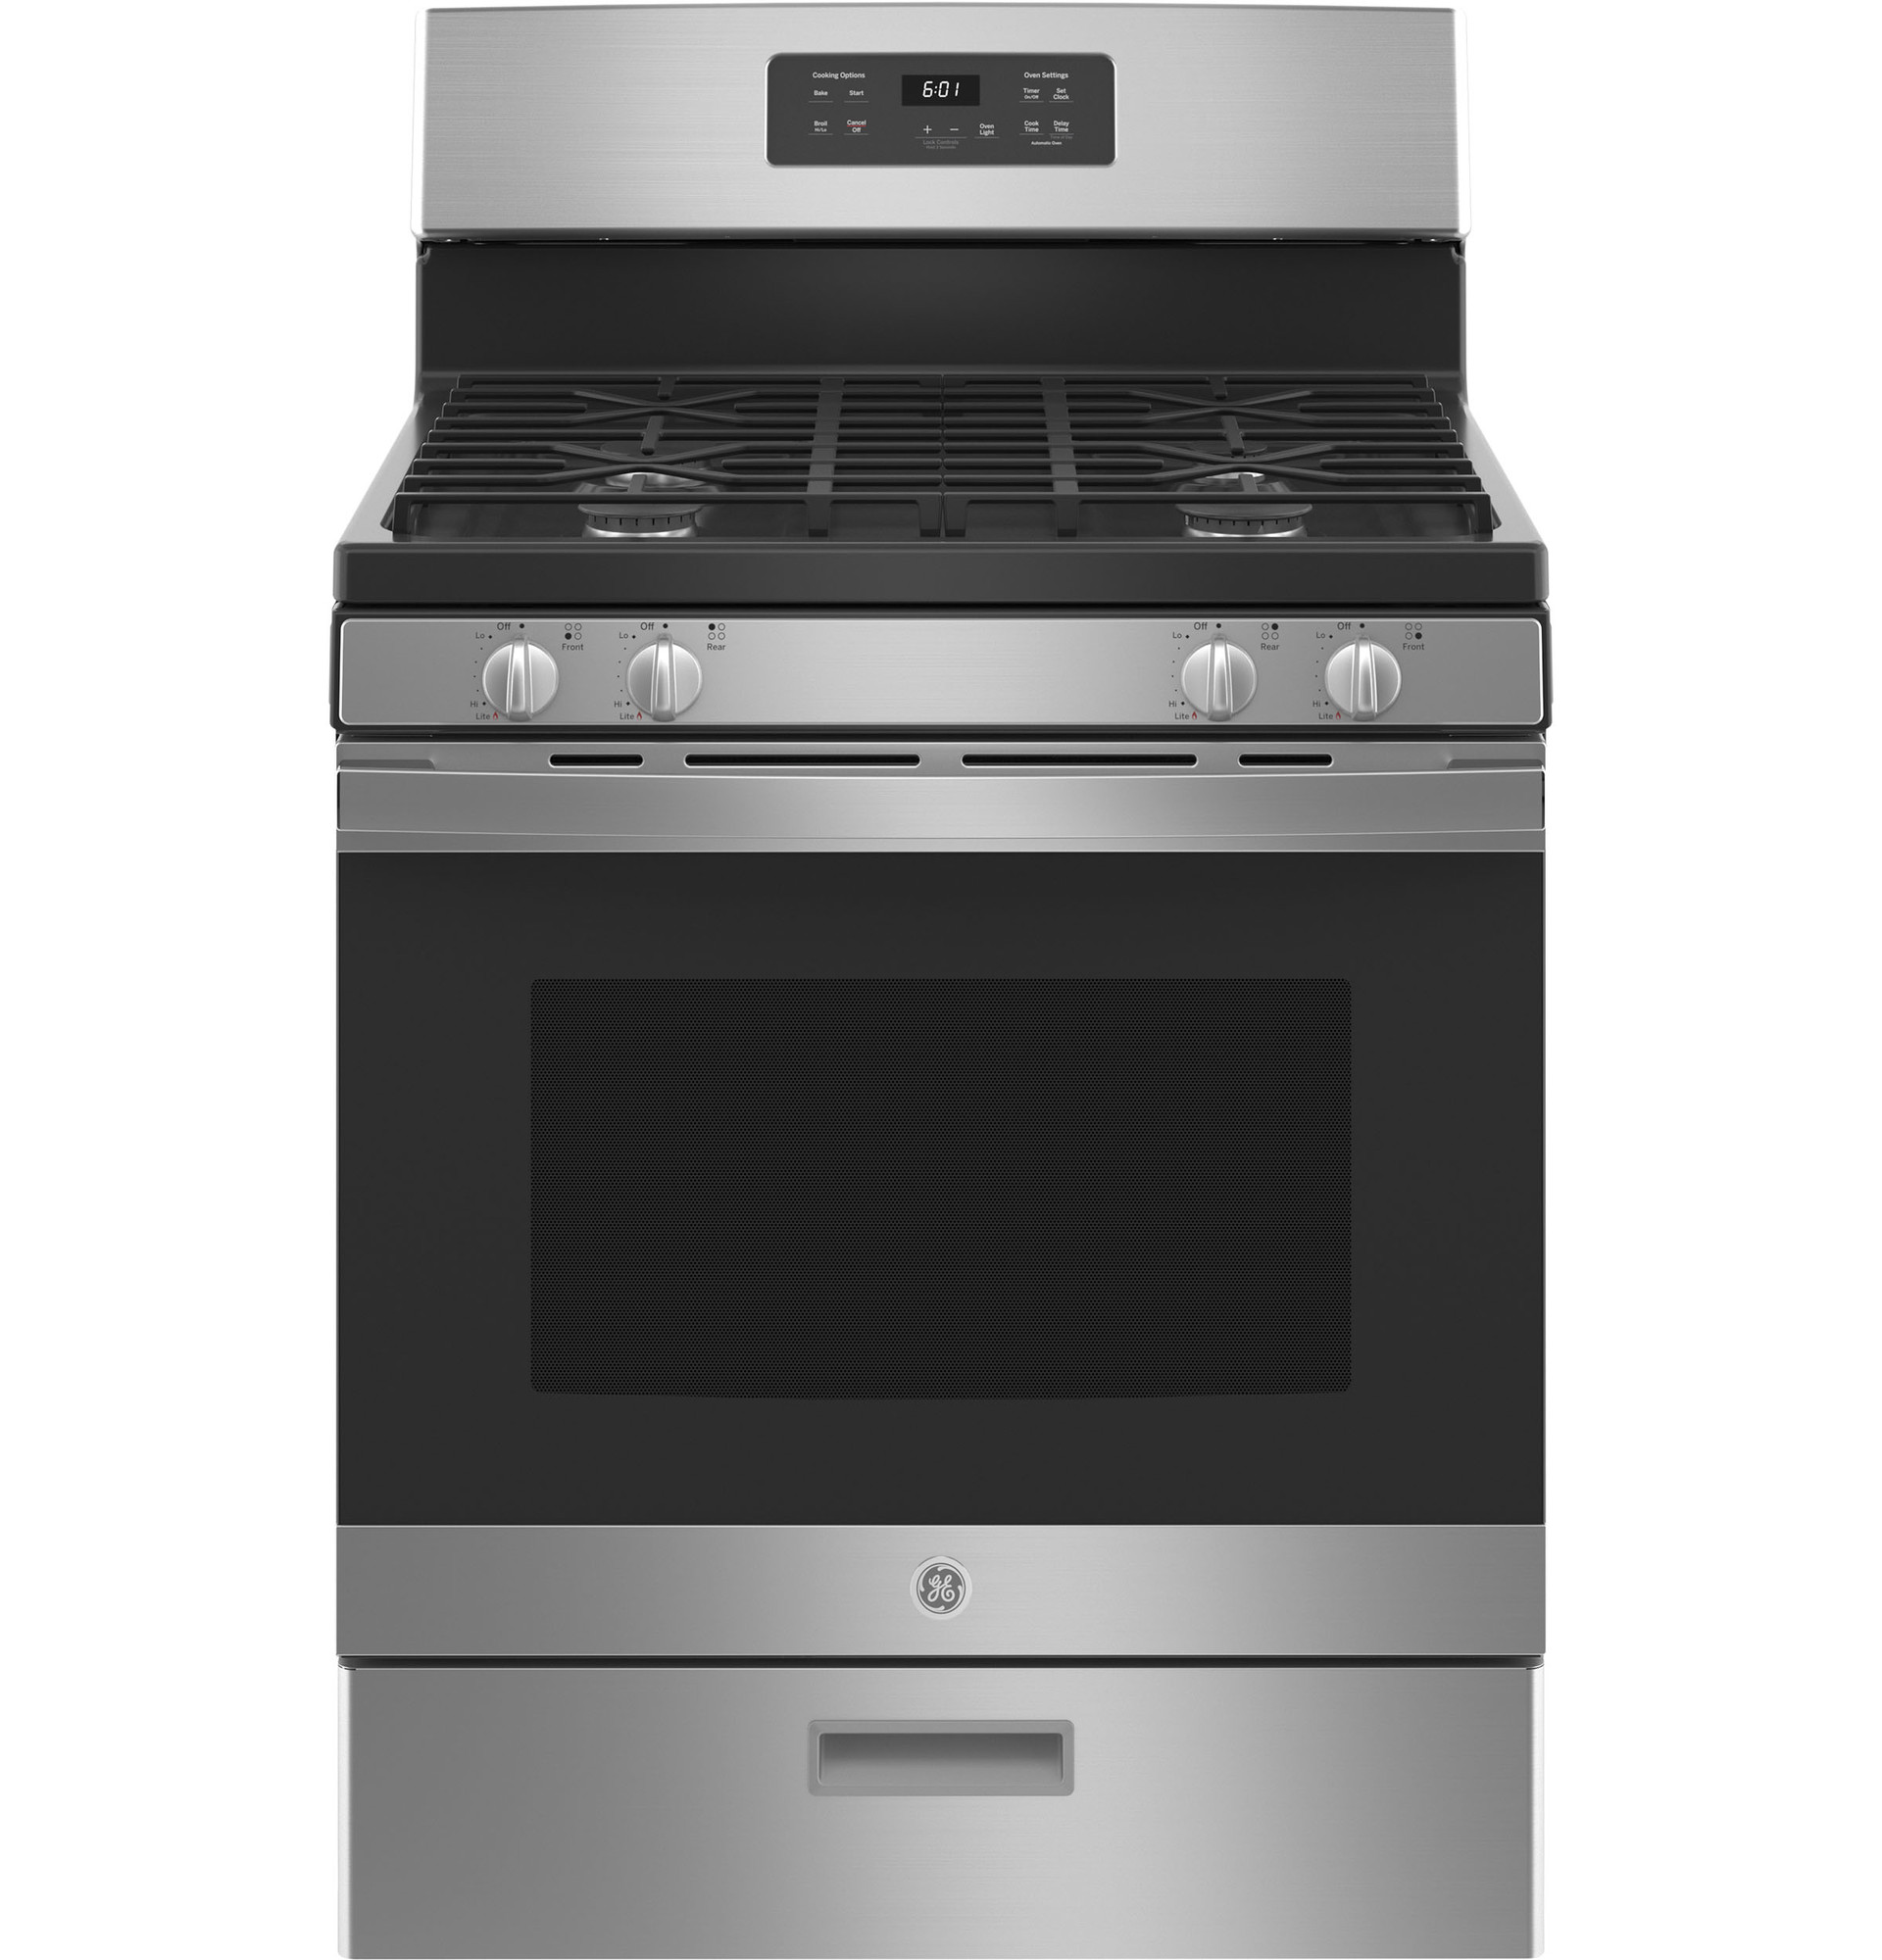 GE Range JCGBS61RPSS in Stainless Steel color showcased by Corbeil Electro Store